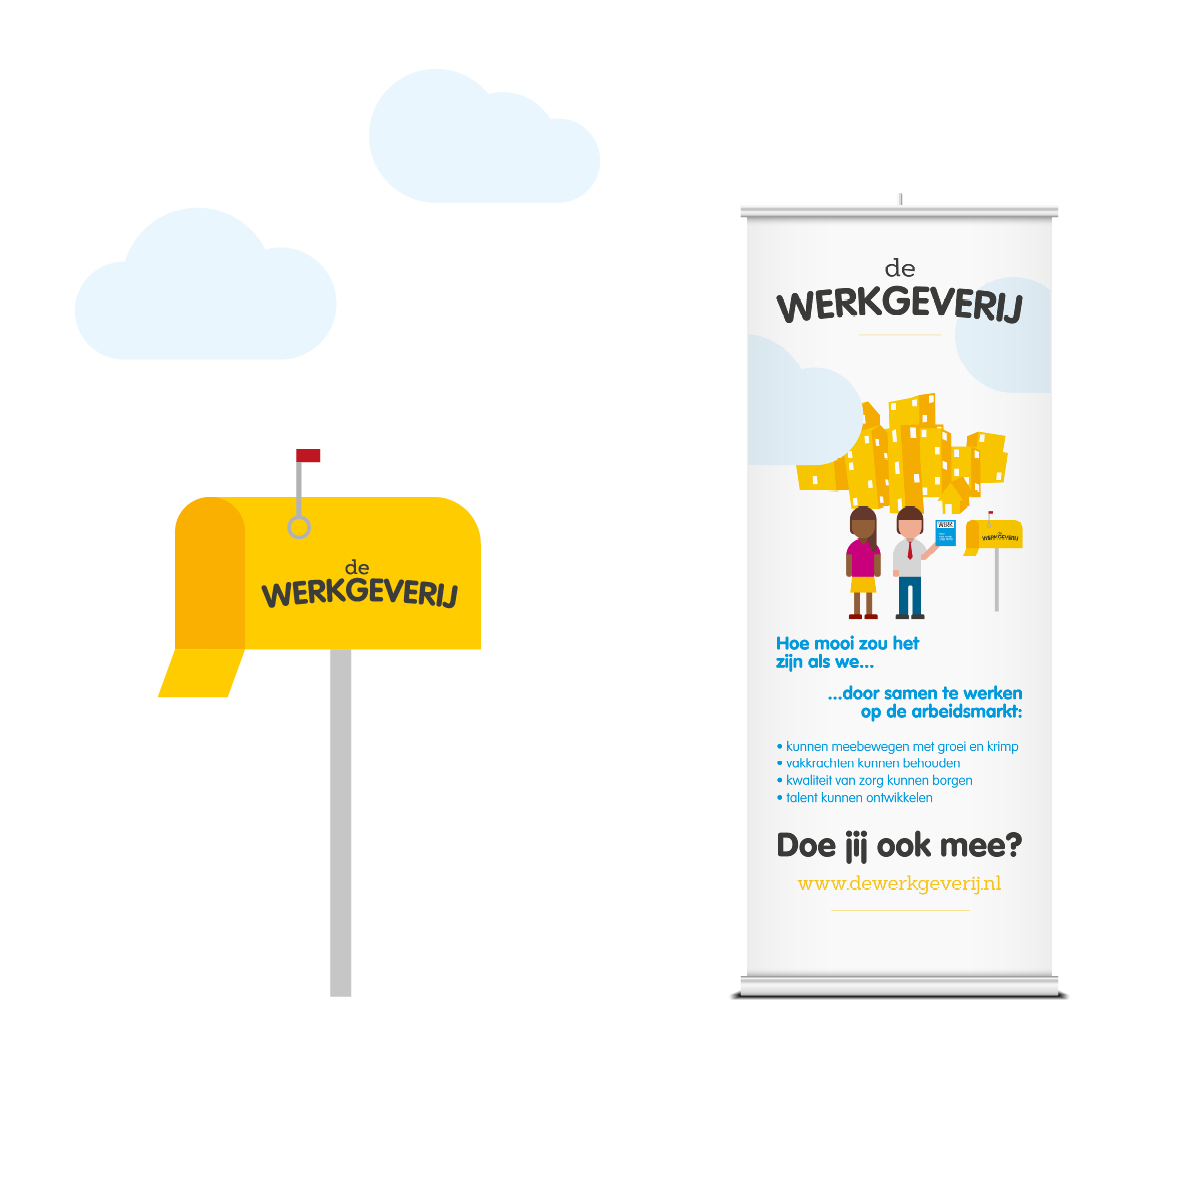 De Werkgeverij | Illustratie en Roll-up banner | Creative Digital Agency Puntkomma Nijmegen